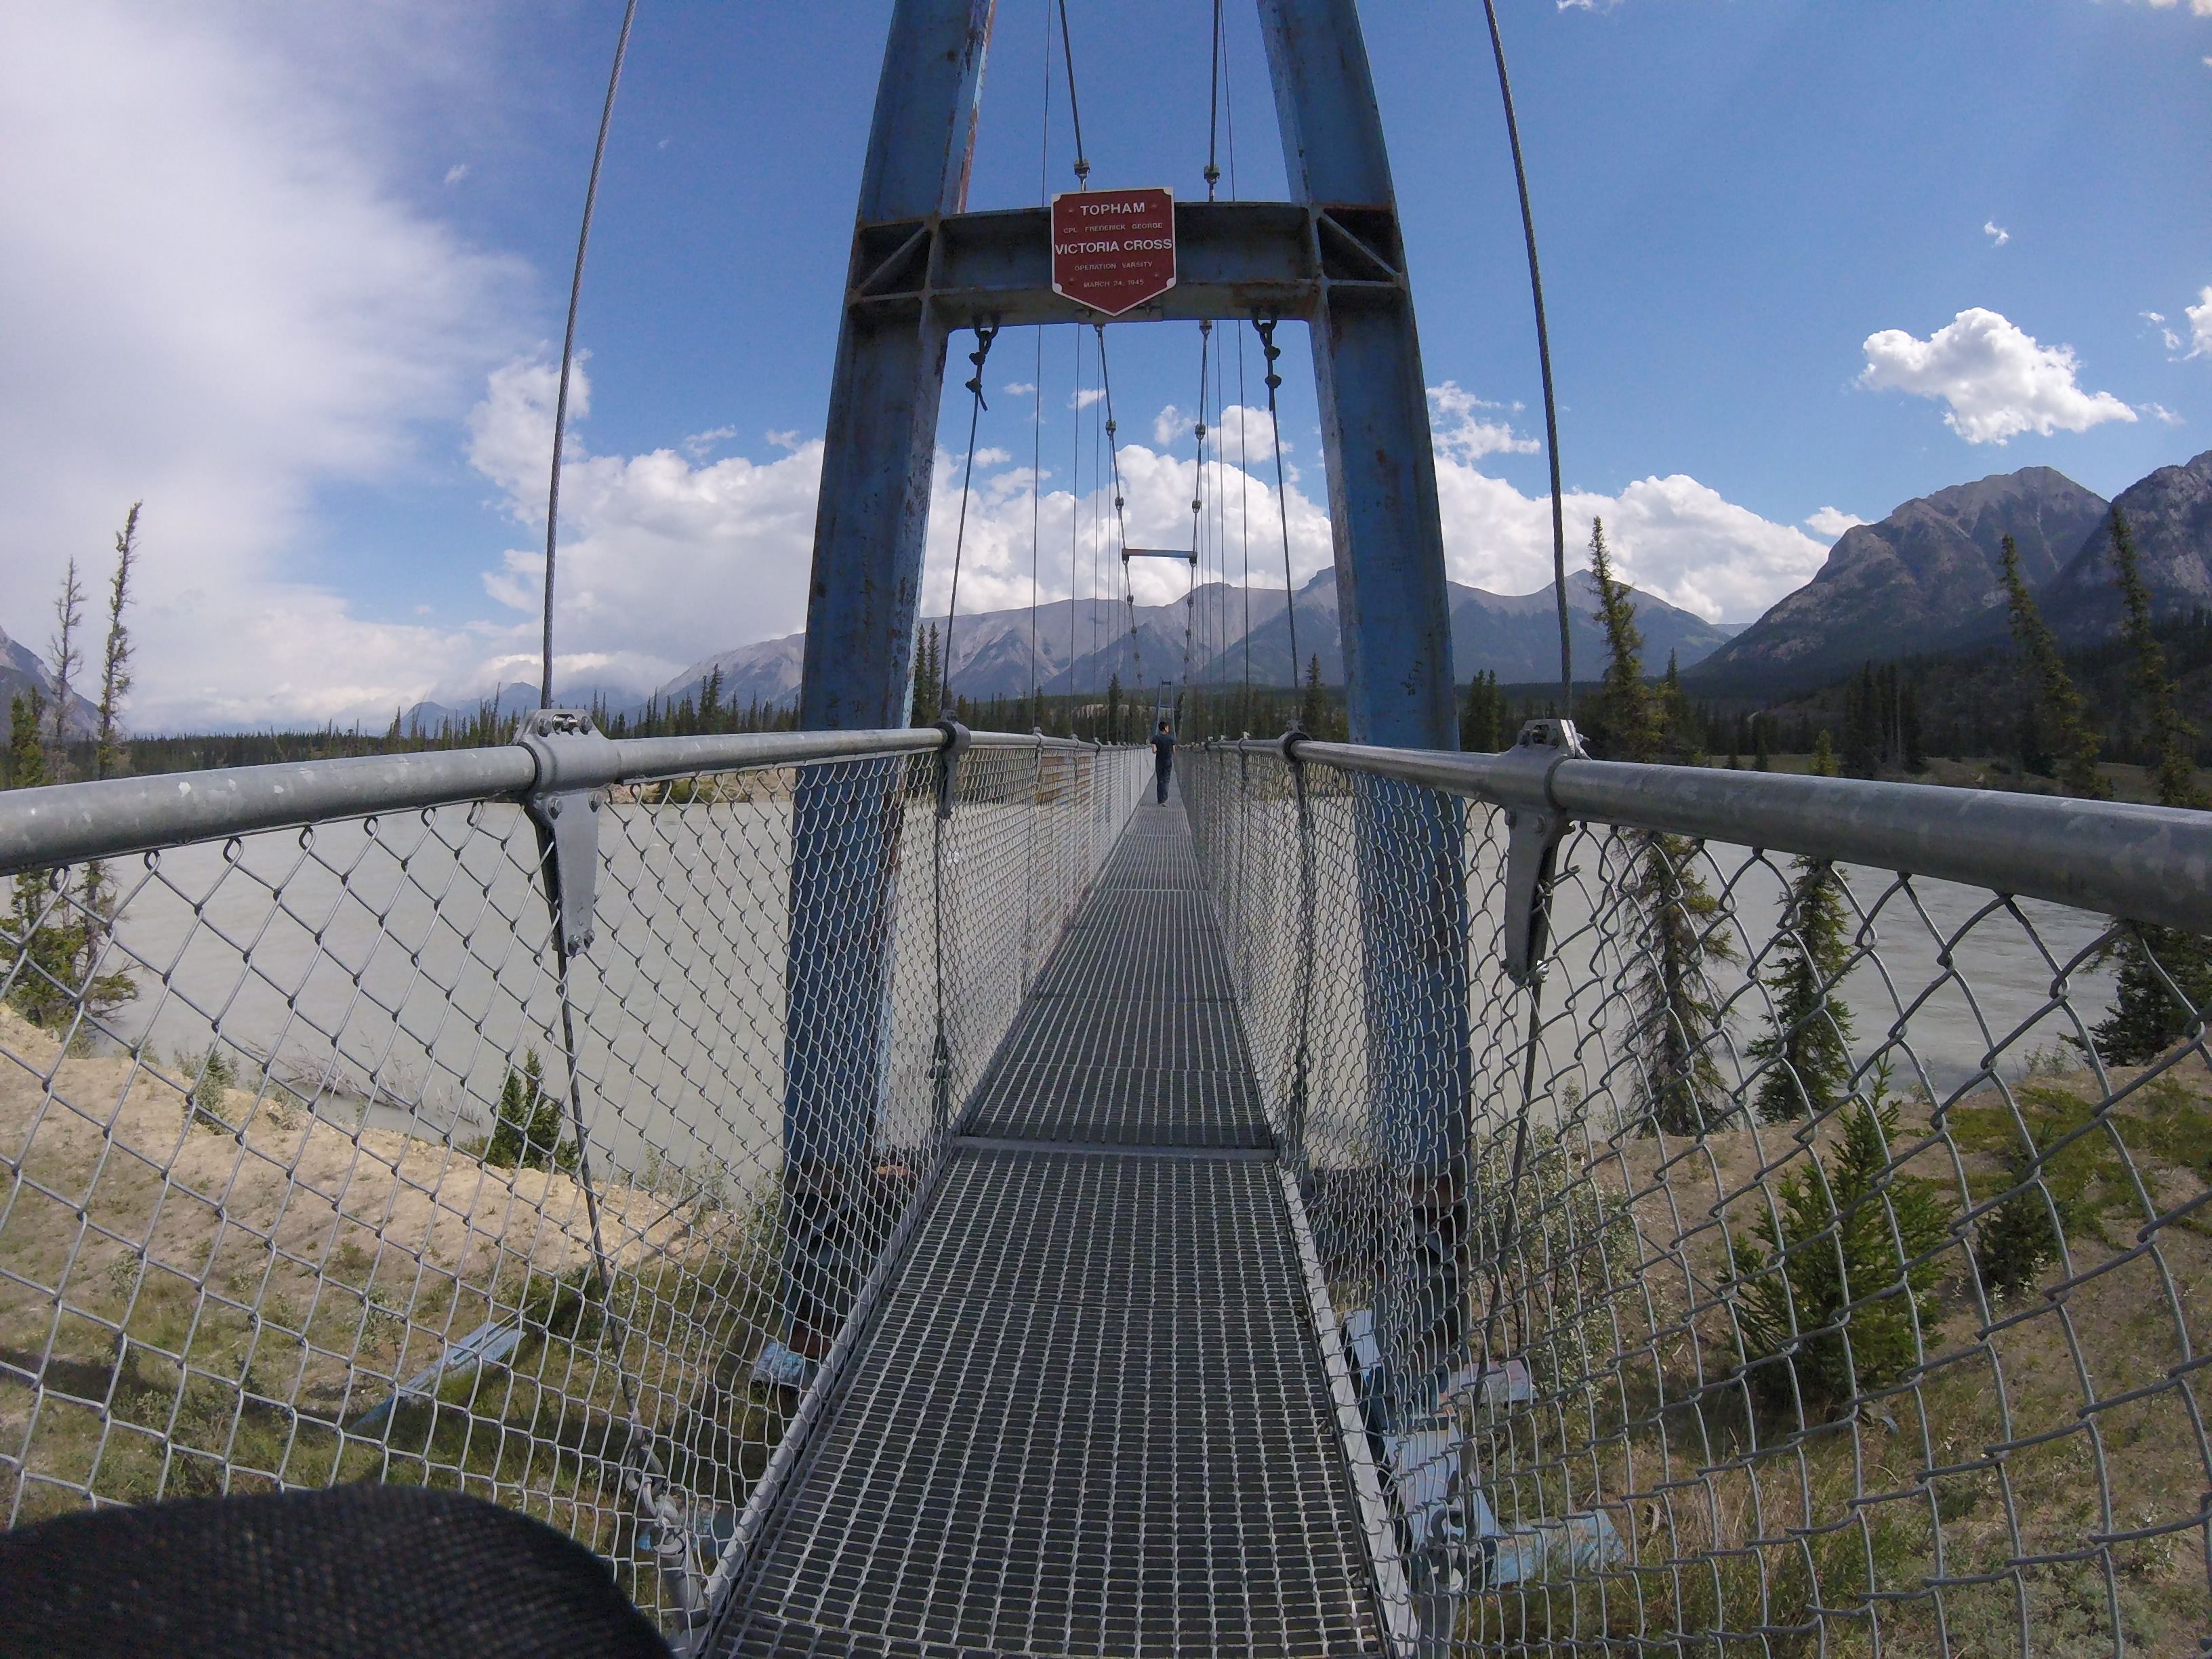 Image of Suspension Bridge over North Saskatchewan River